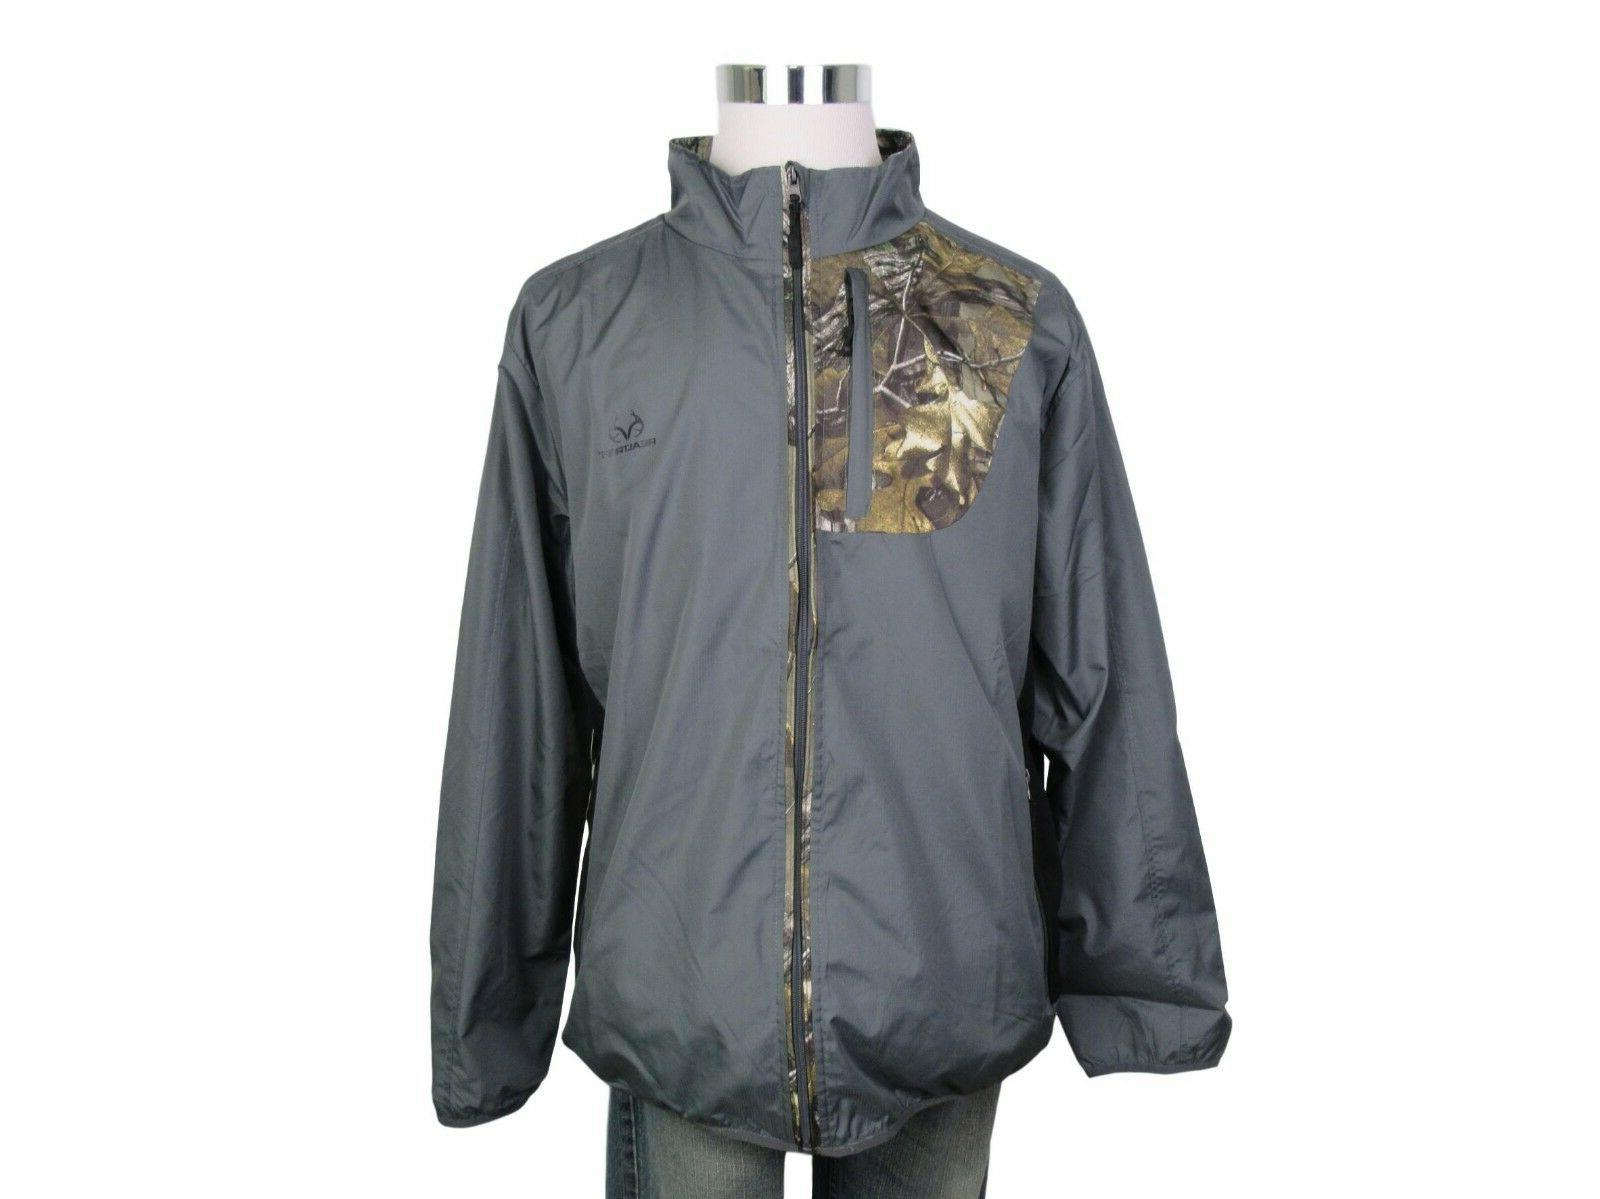 RealTree Jacket Mens Size Large Camo Charcoal Grey Full Zip